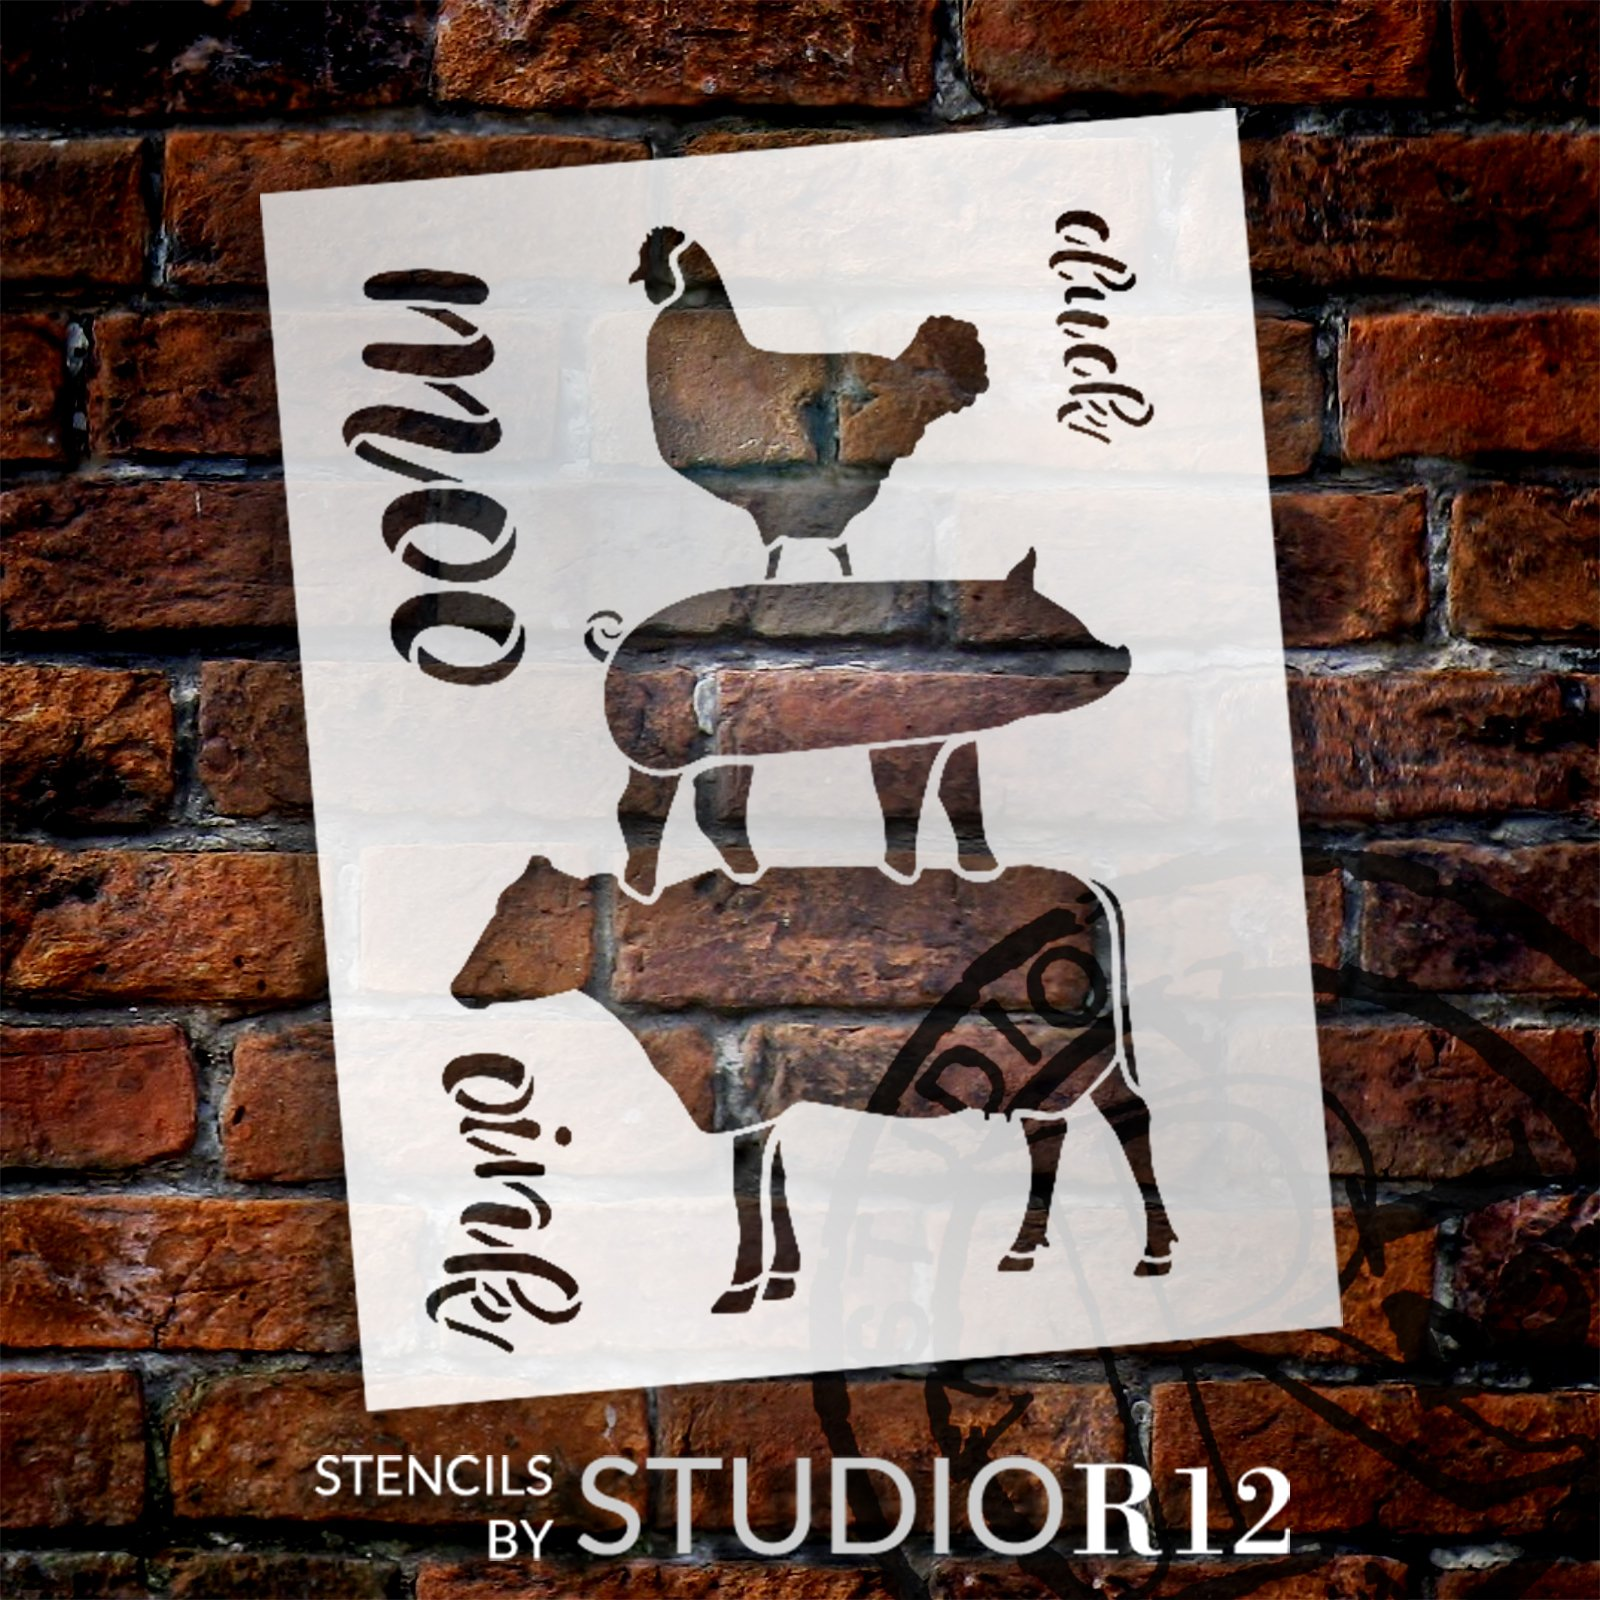 Cluck Oink Moo Stencil by StudioR12   Chicken Pig Cow   Craft DIY Farmhouse Home Decor   Paint Wood Sign   Reusable Mylar Template   Select Size